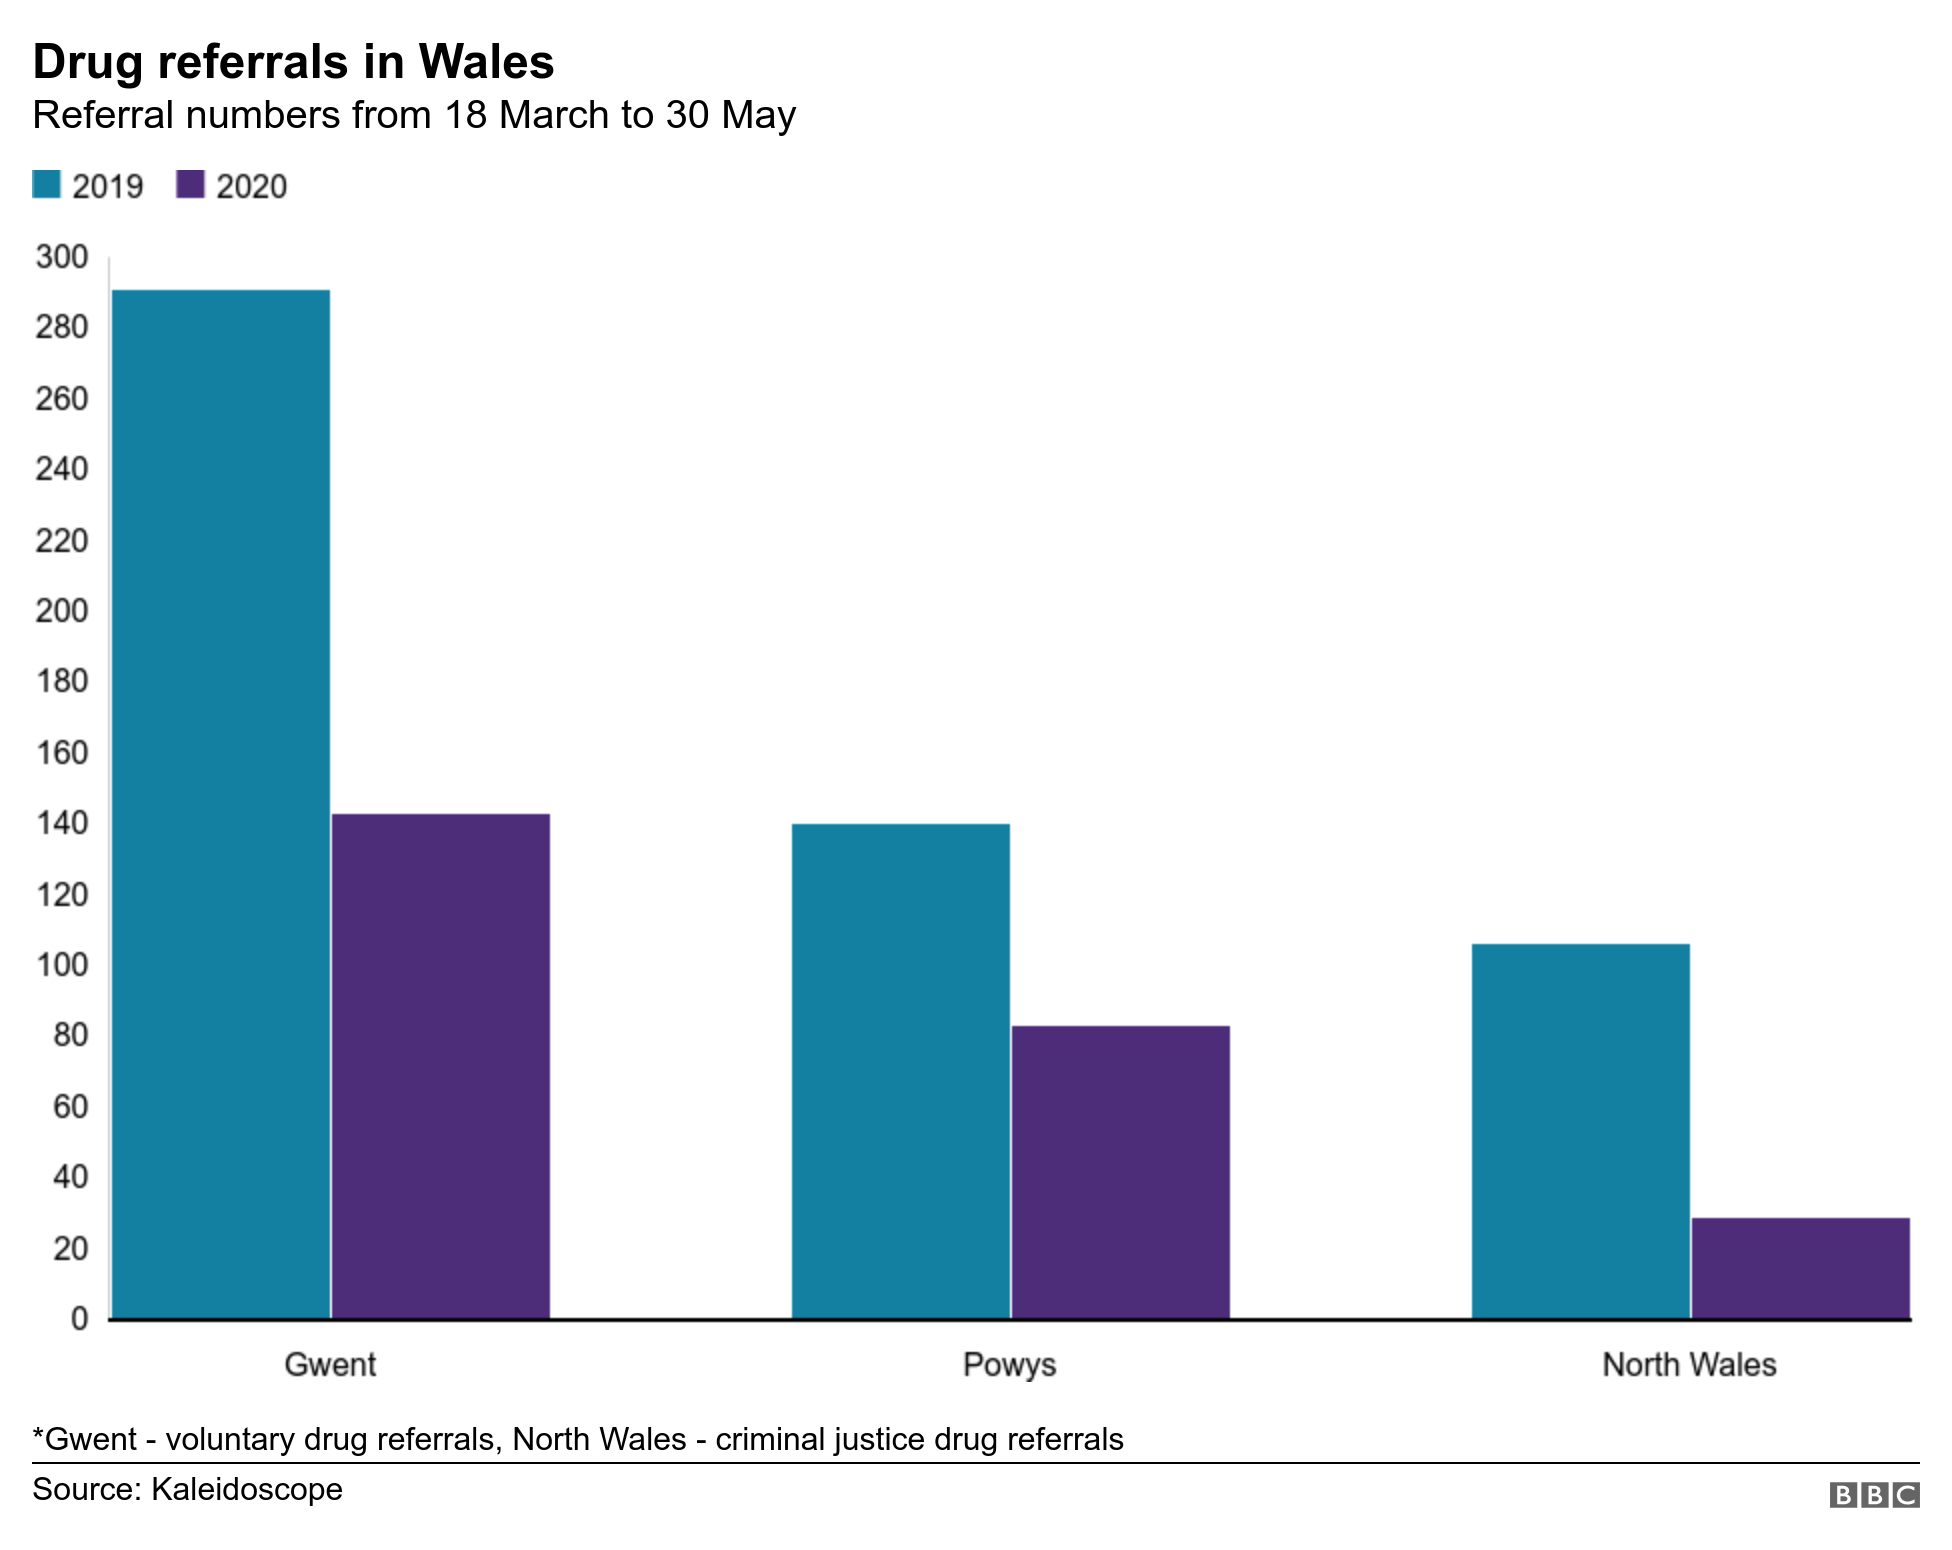 Drug referrals in Wales